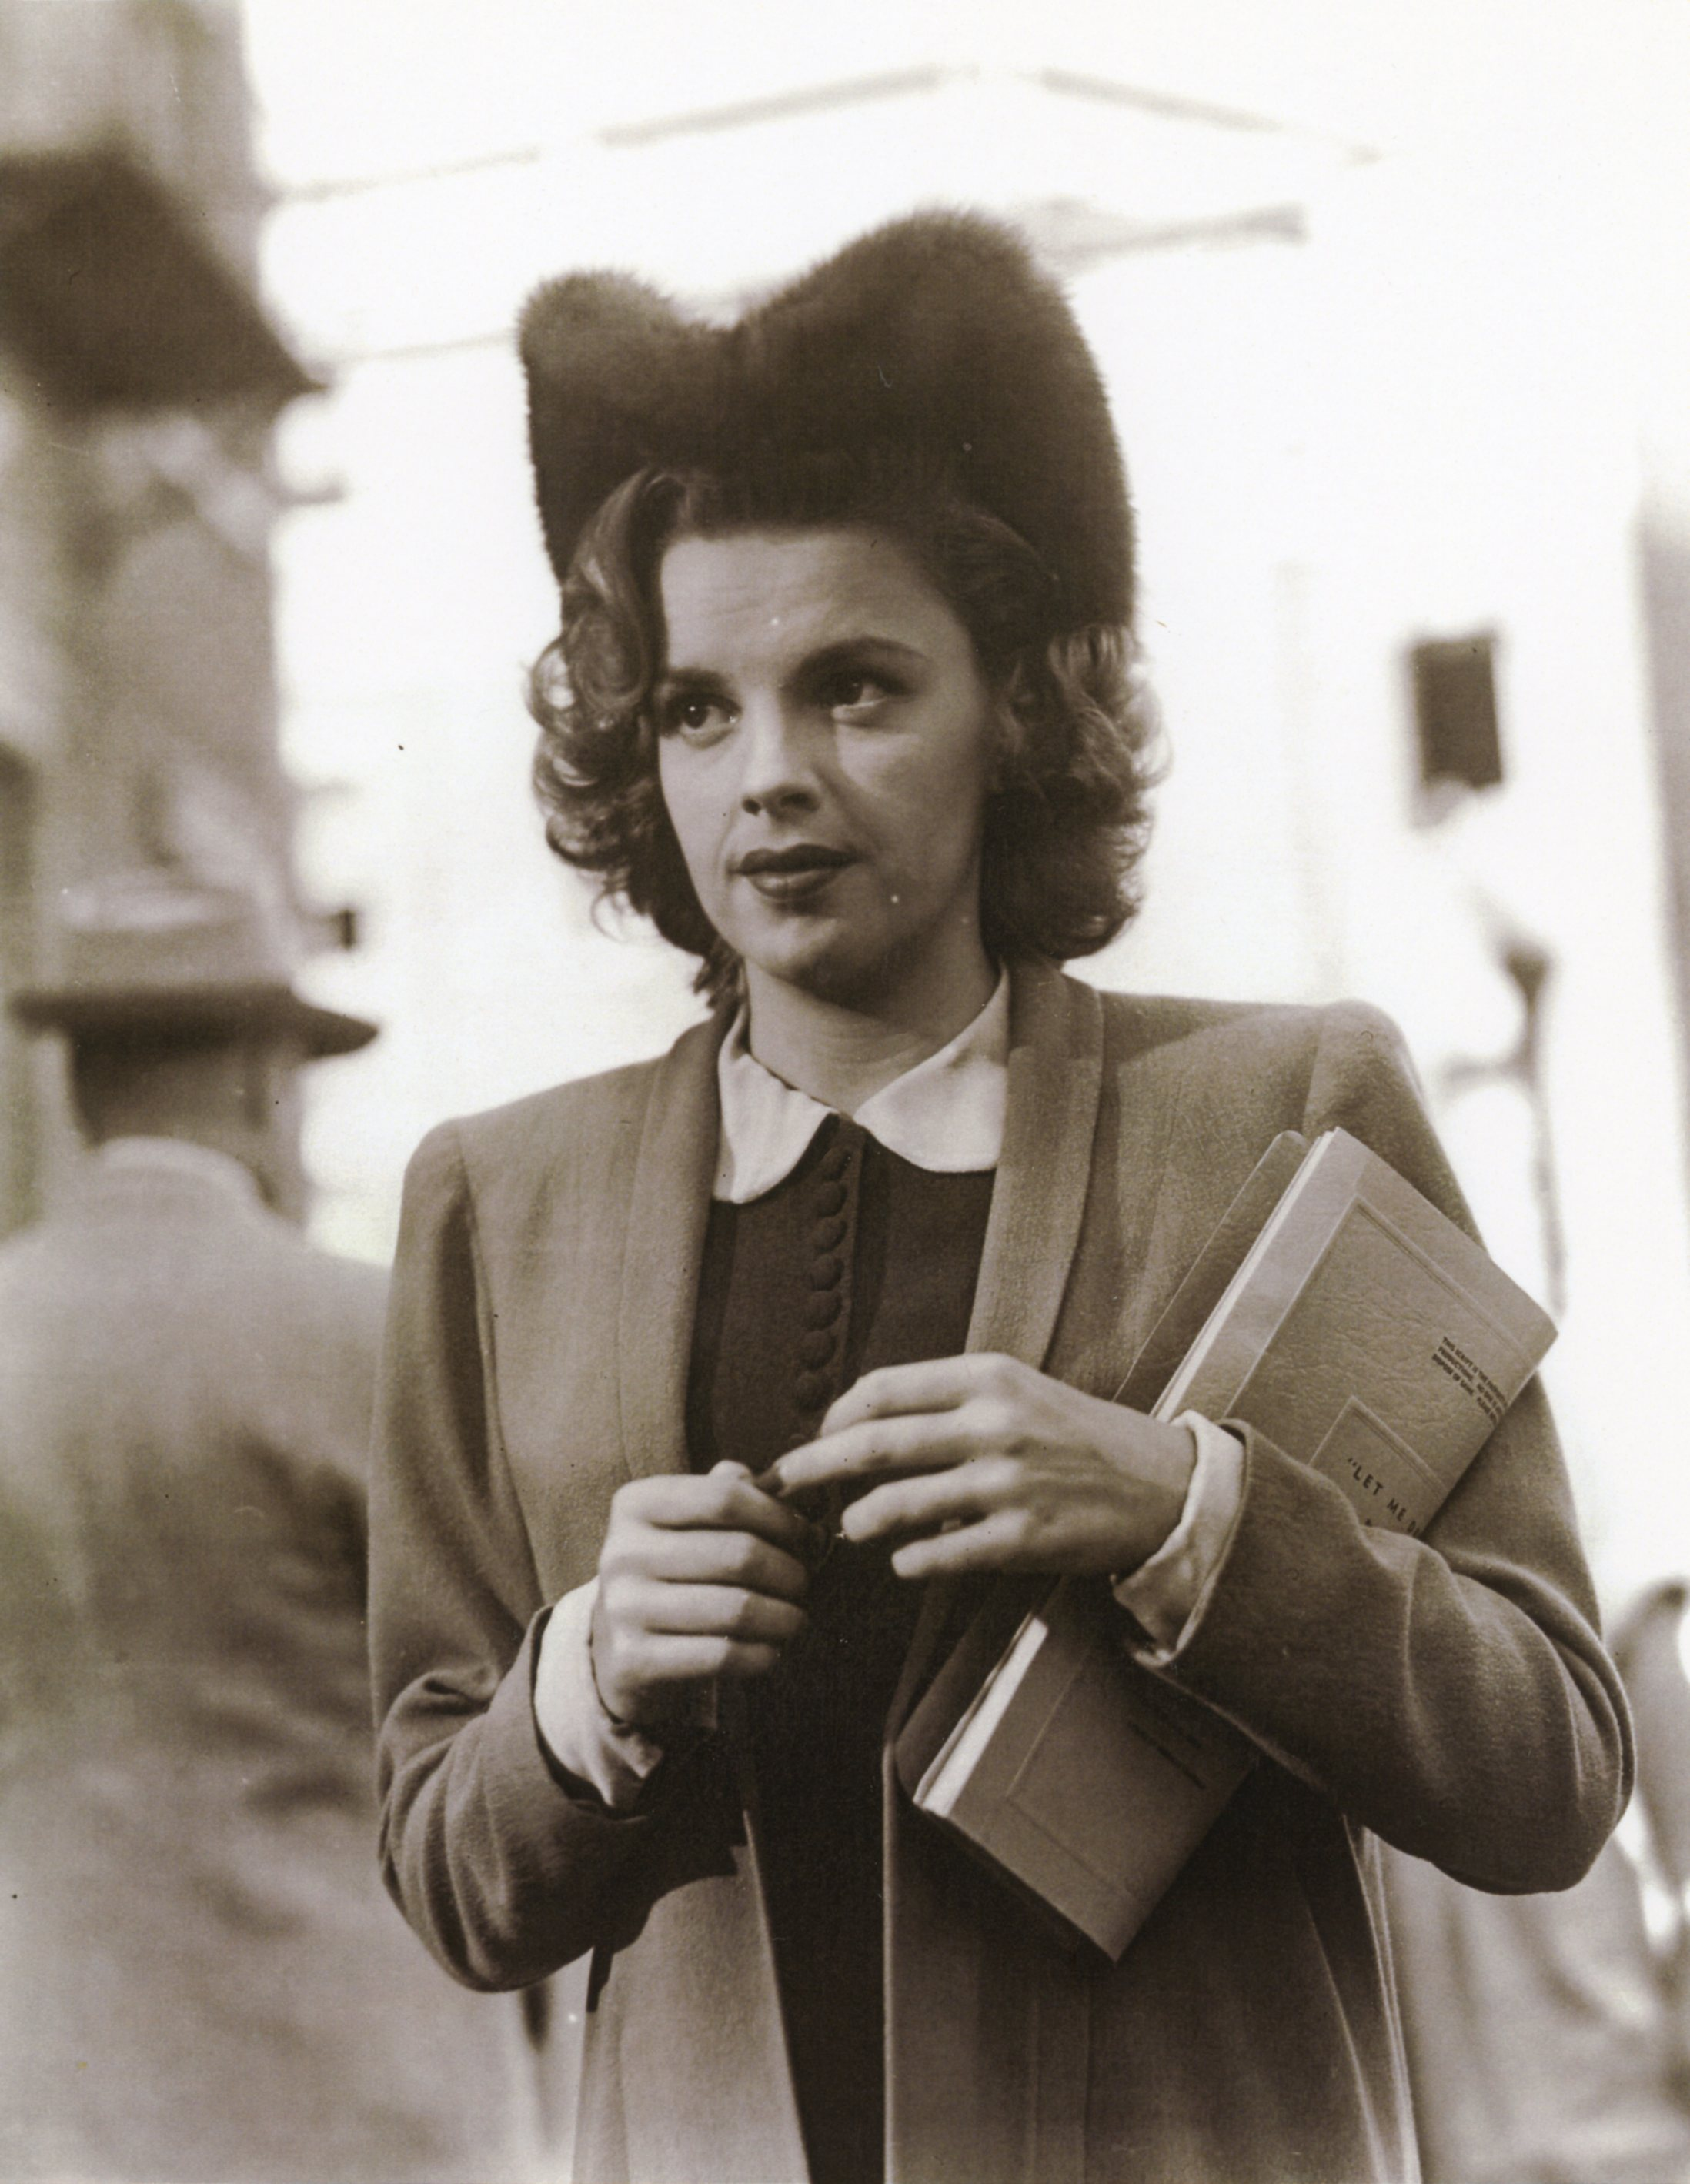 the life and career of judy garland Garland was certainly the victim of the horrific world of old hollywood, but she seemed unable to break the cycle of bad relationships and financial ruin that ultimately took over her life and career.